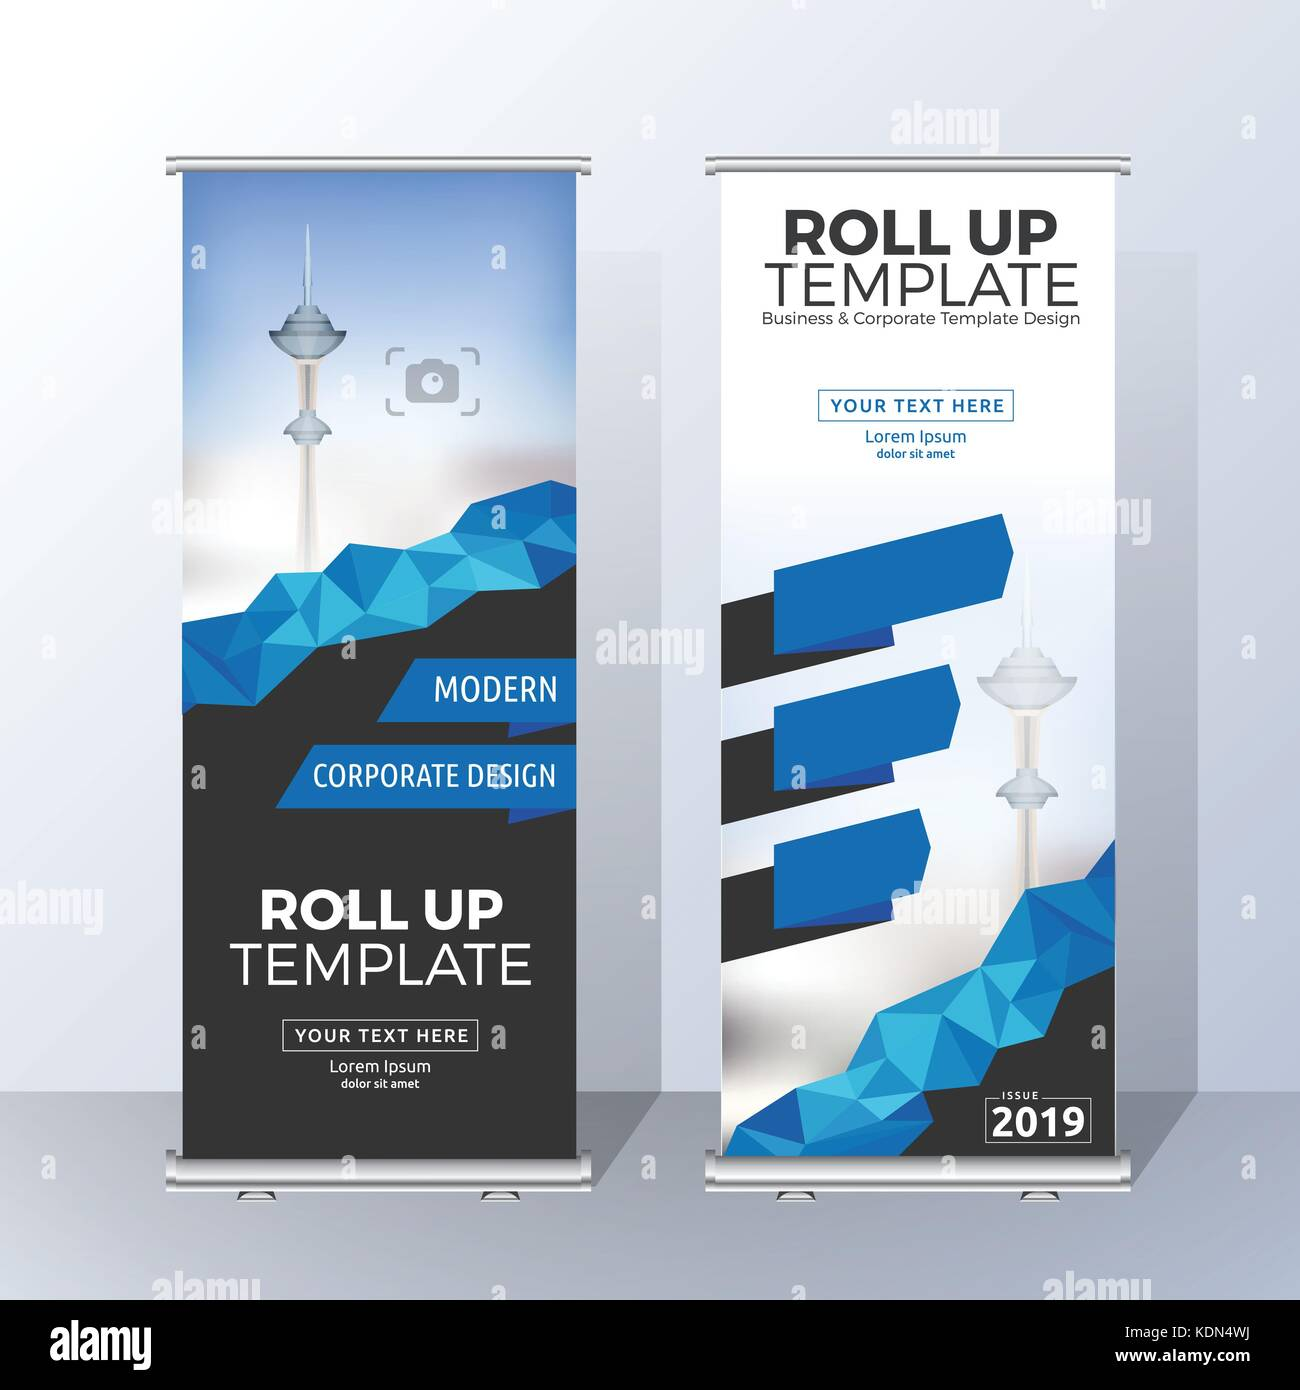 Marketing Exhibition Stand Vector : Vertical roll up banner template design for announce and